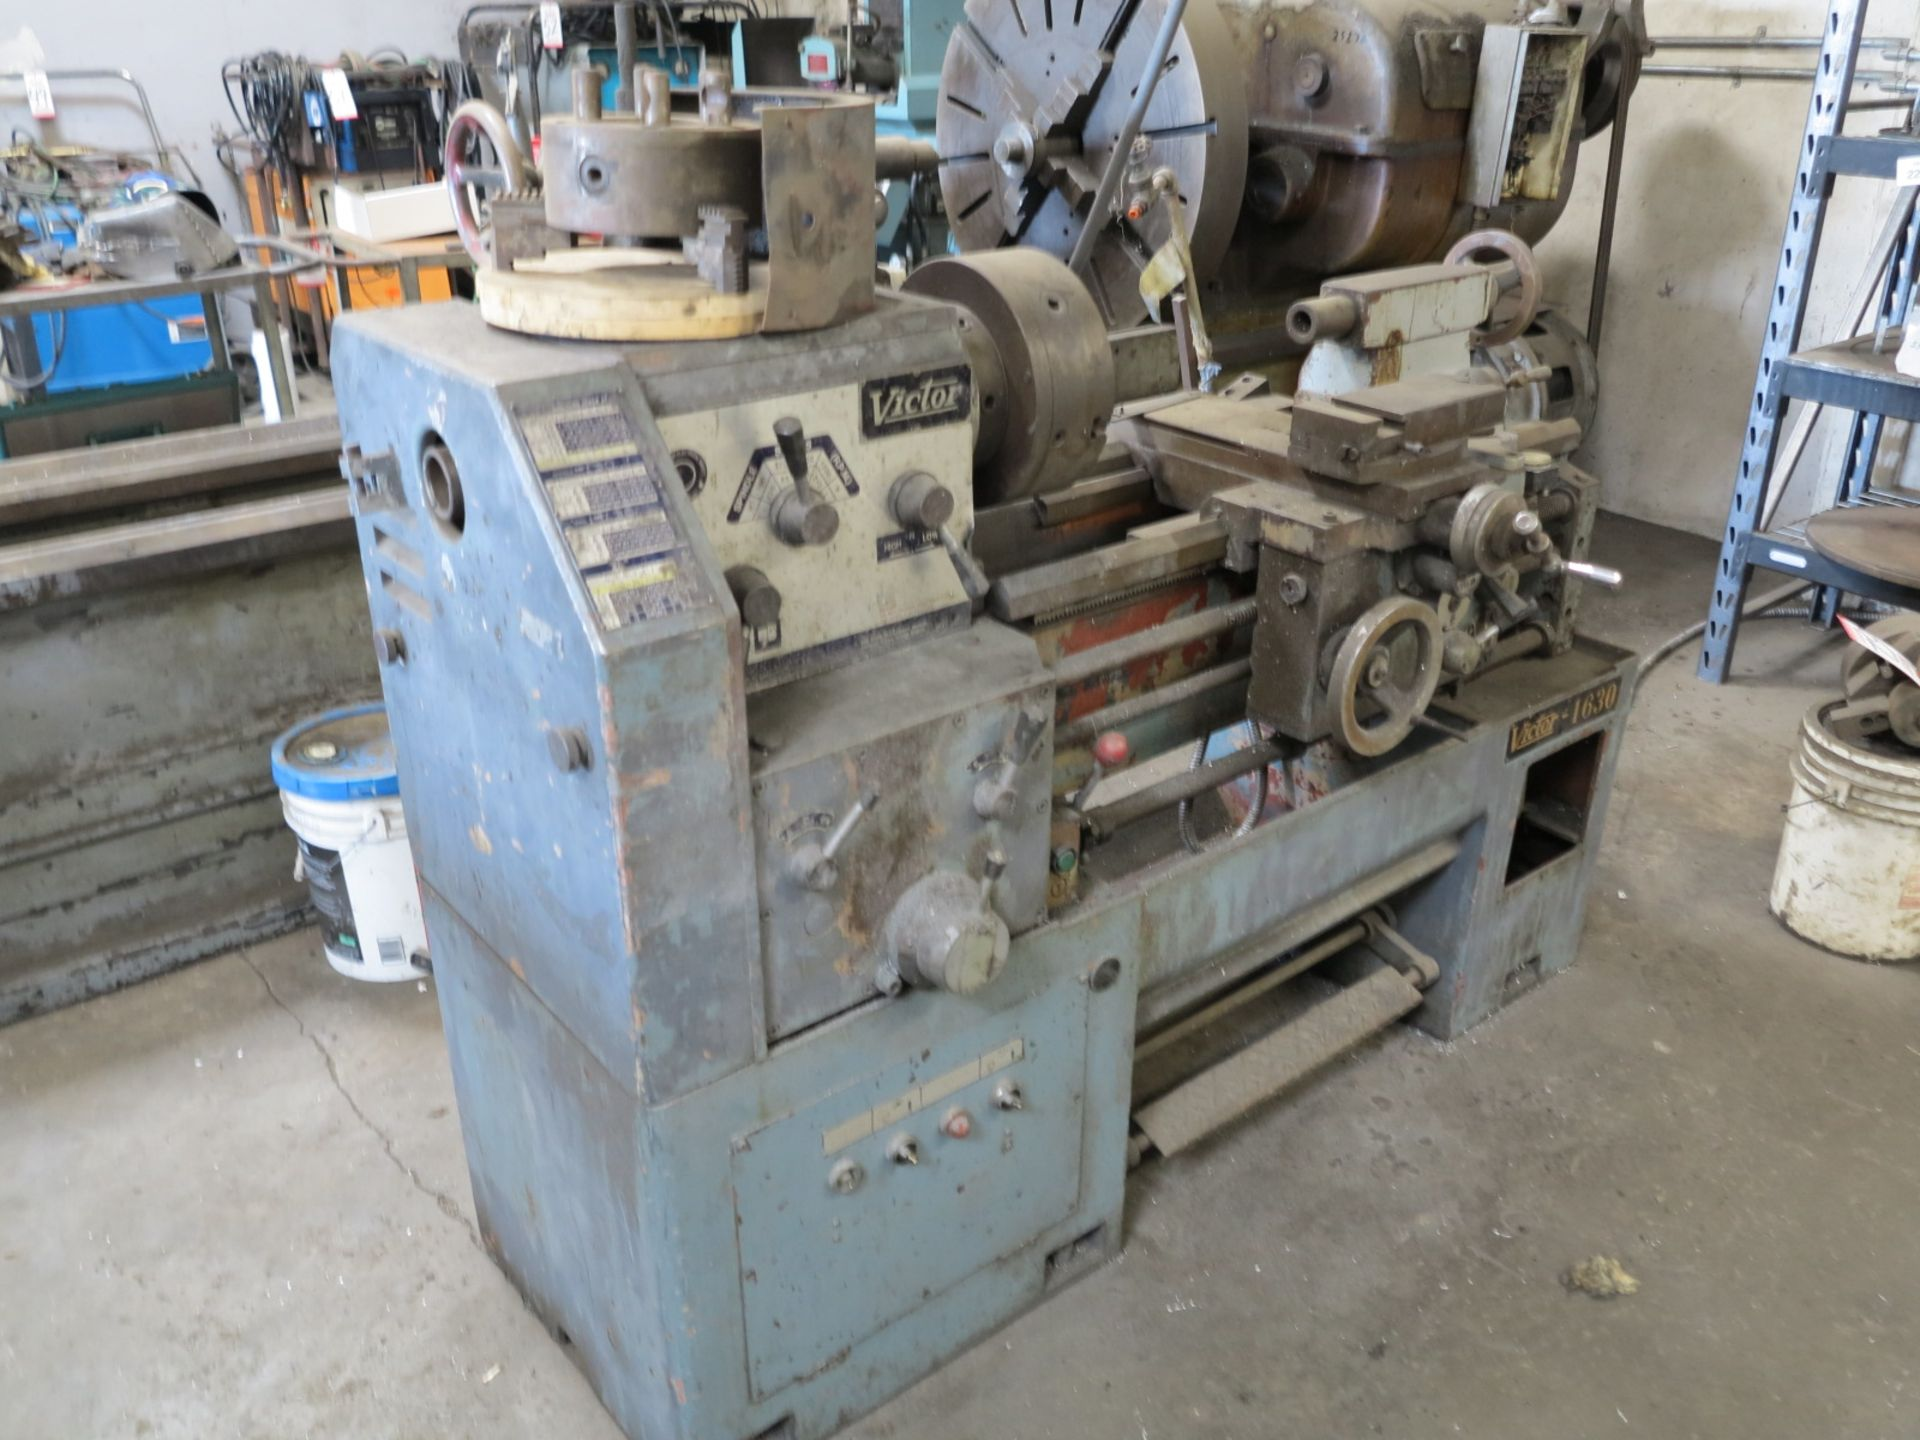 """Lot 60 - VICTOR 1630 LATHE, W/ 10"""" 3-JAW CHUCK, TAILSTOCK"""